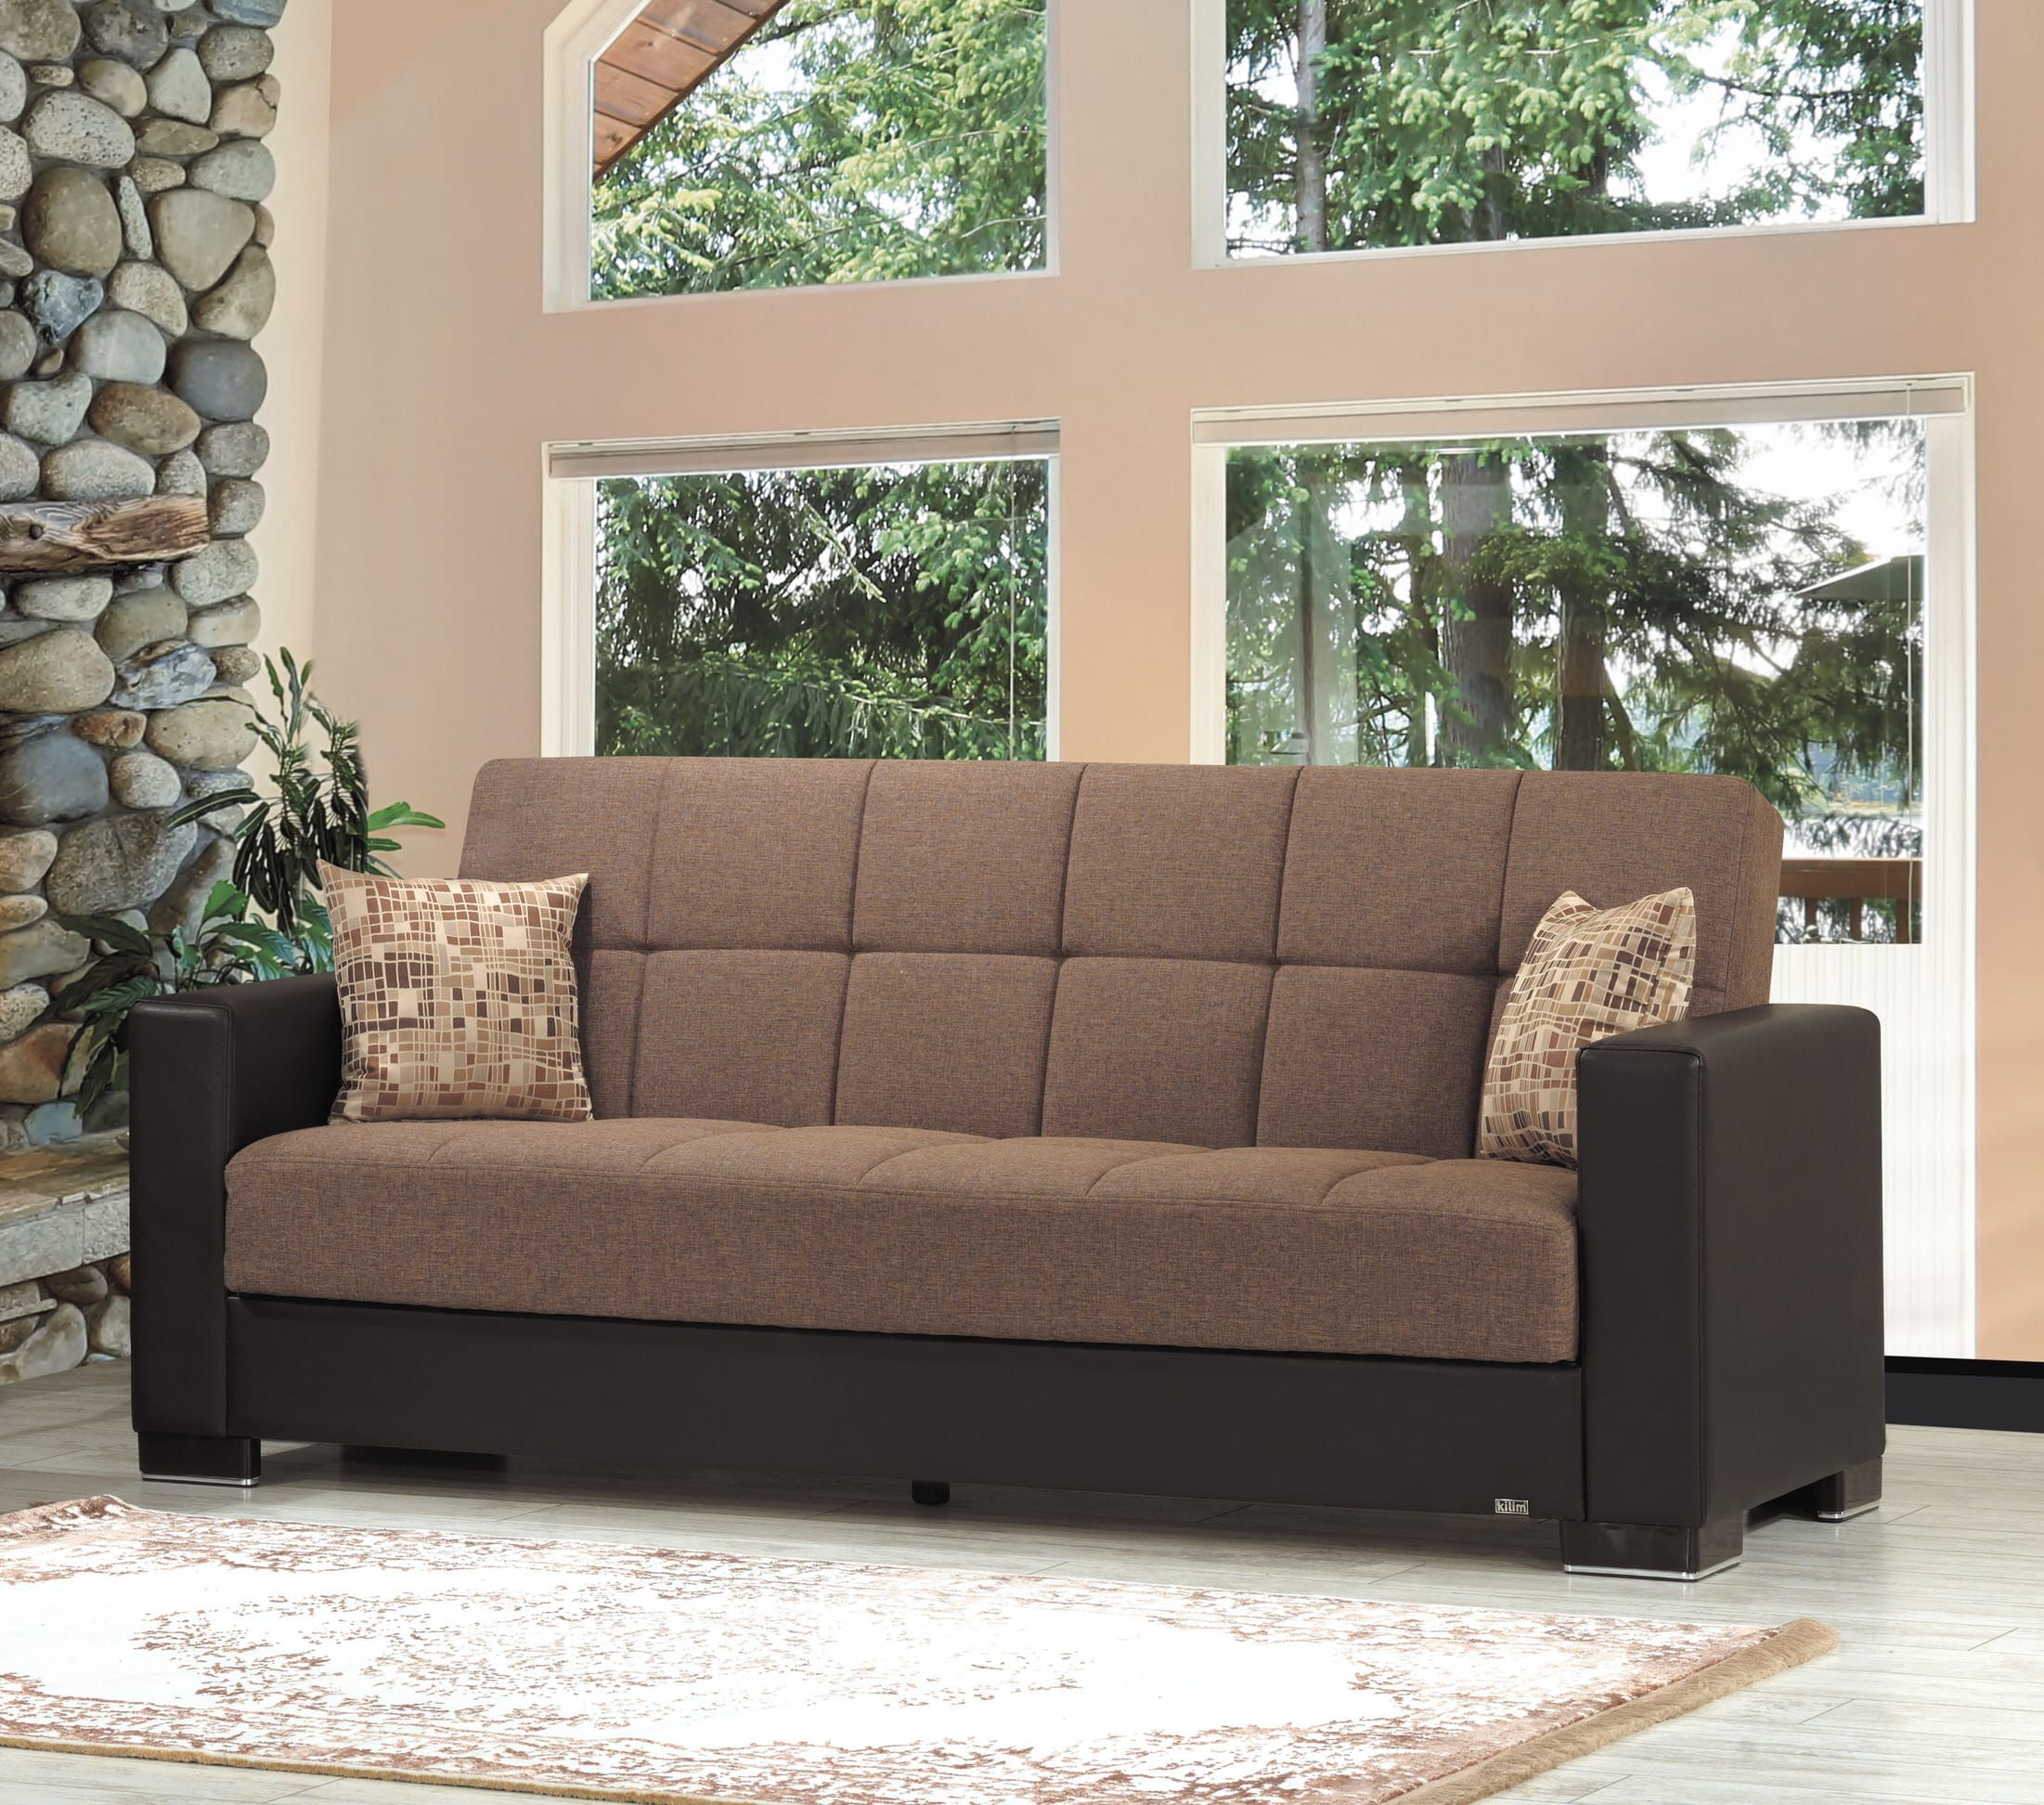 Armada Brown Fabric Sofa Bed By Casamode